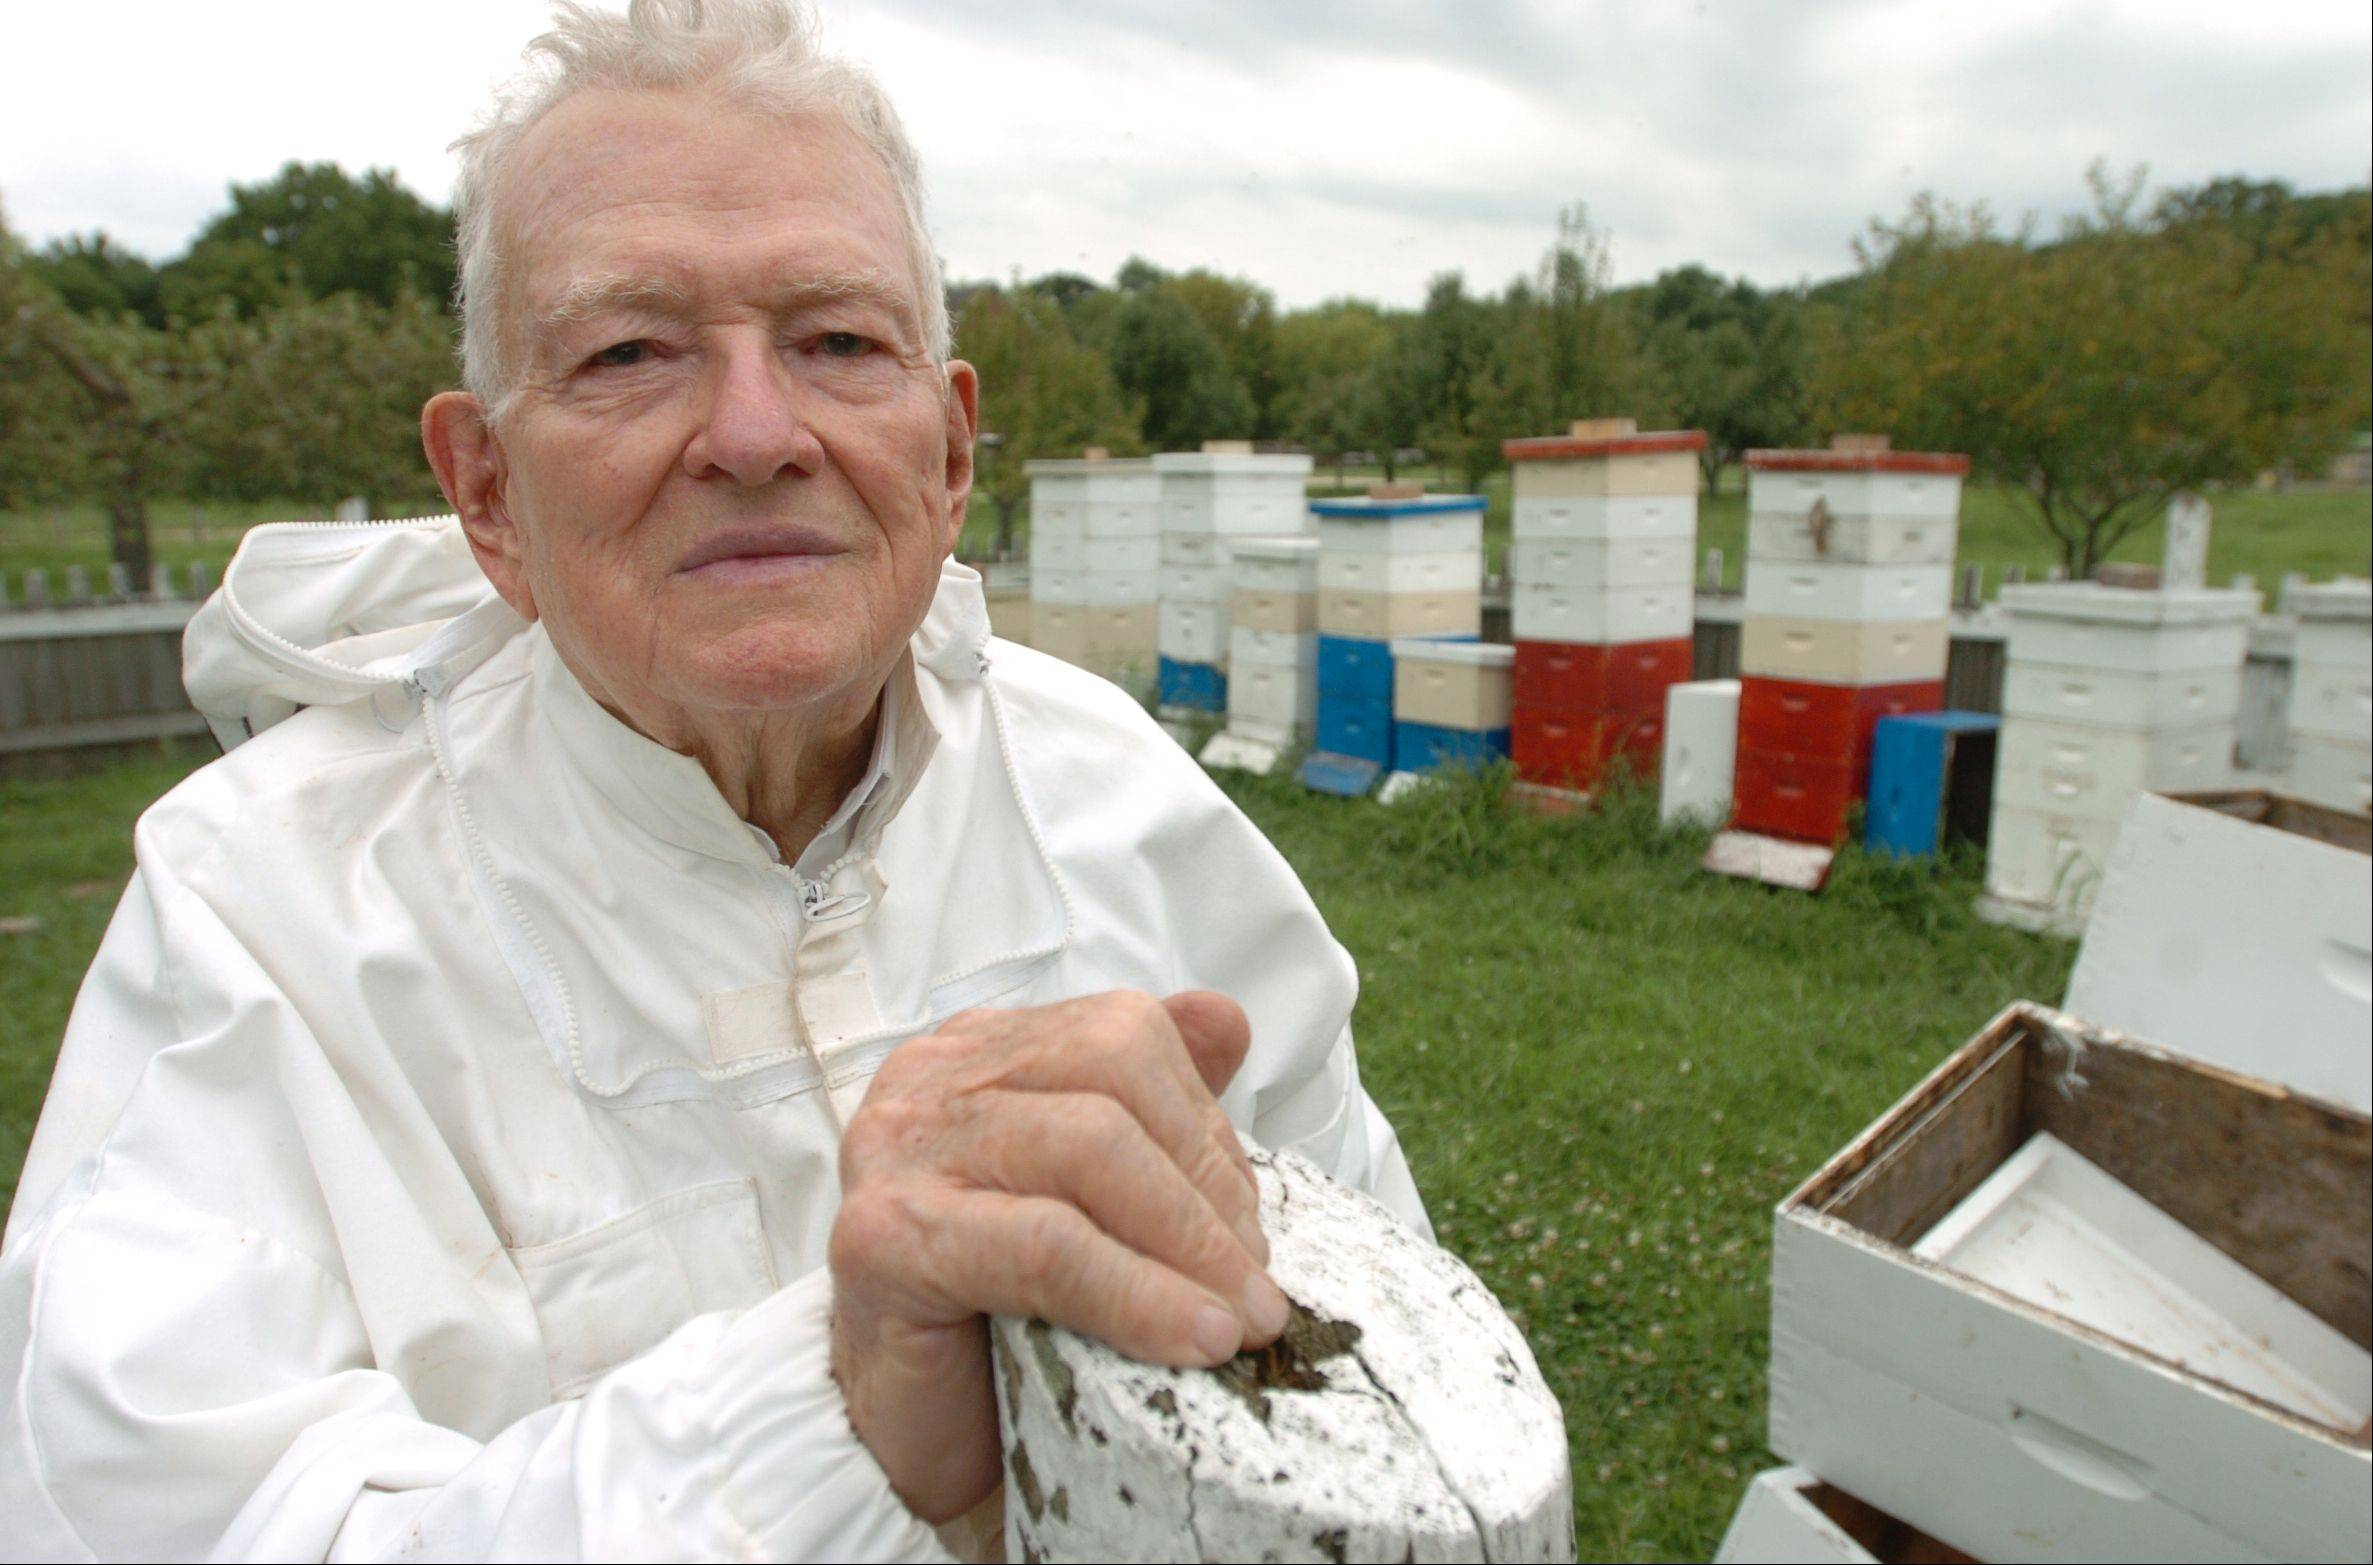 Lawrence DuBose, a longtime volunteer beekeeper at Kline Creek Farm, has donated $25,000 to the Carol Stream Public Library just months after donating the same amount to the Wheaton Public Library.